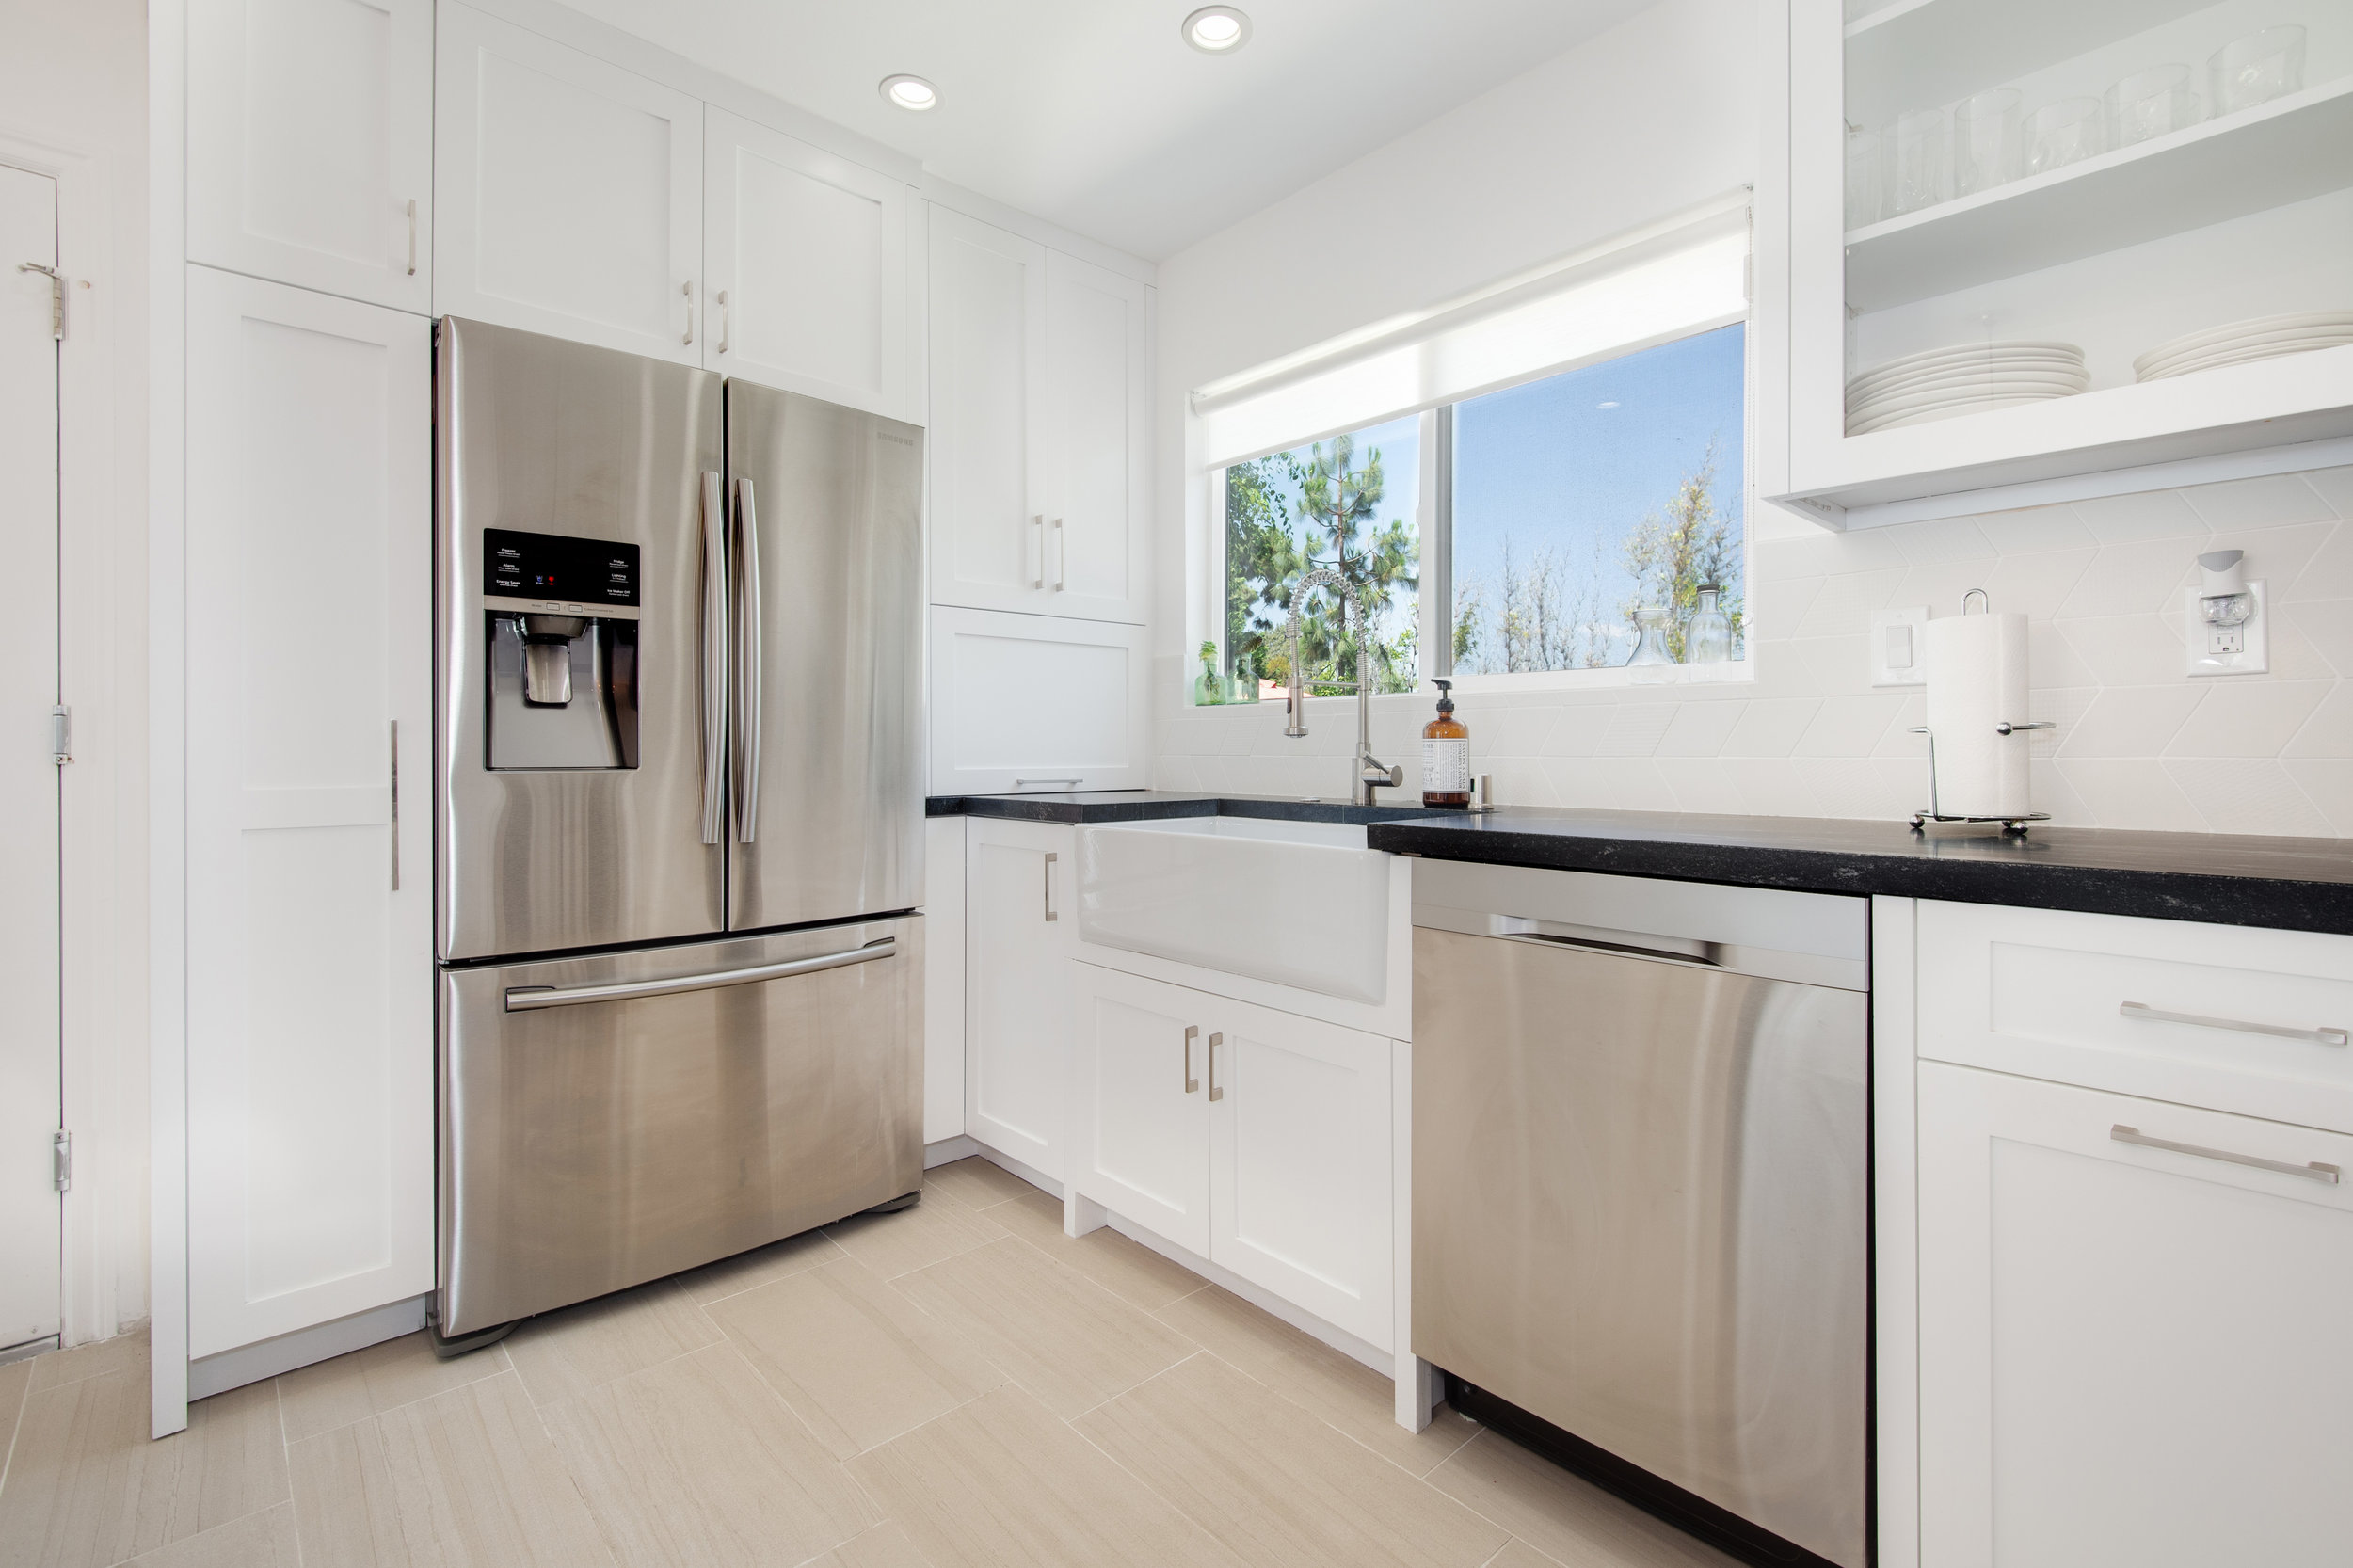 017 7612 Midfield Avenue Westchester Los Angeles For Sale Lease The Malibu Life Team Luxury Real Estate.jpg